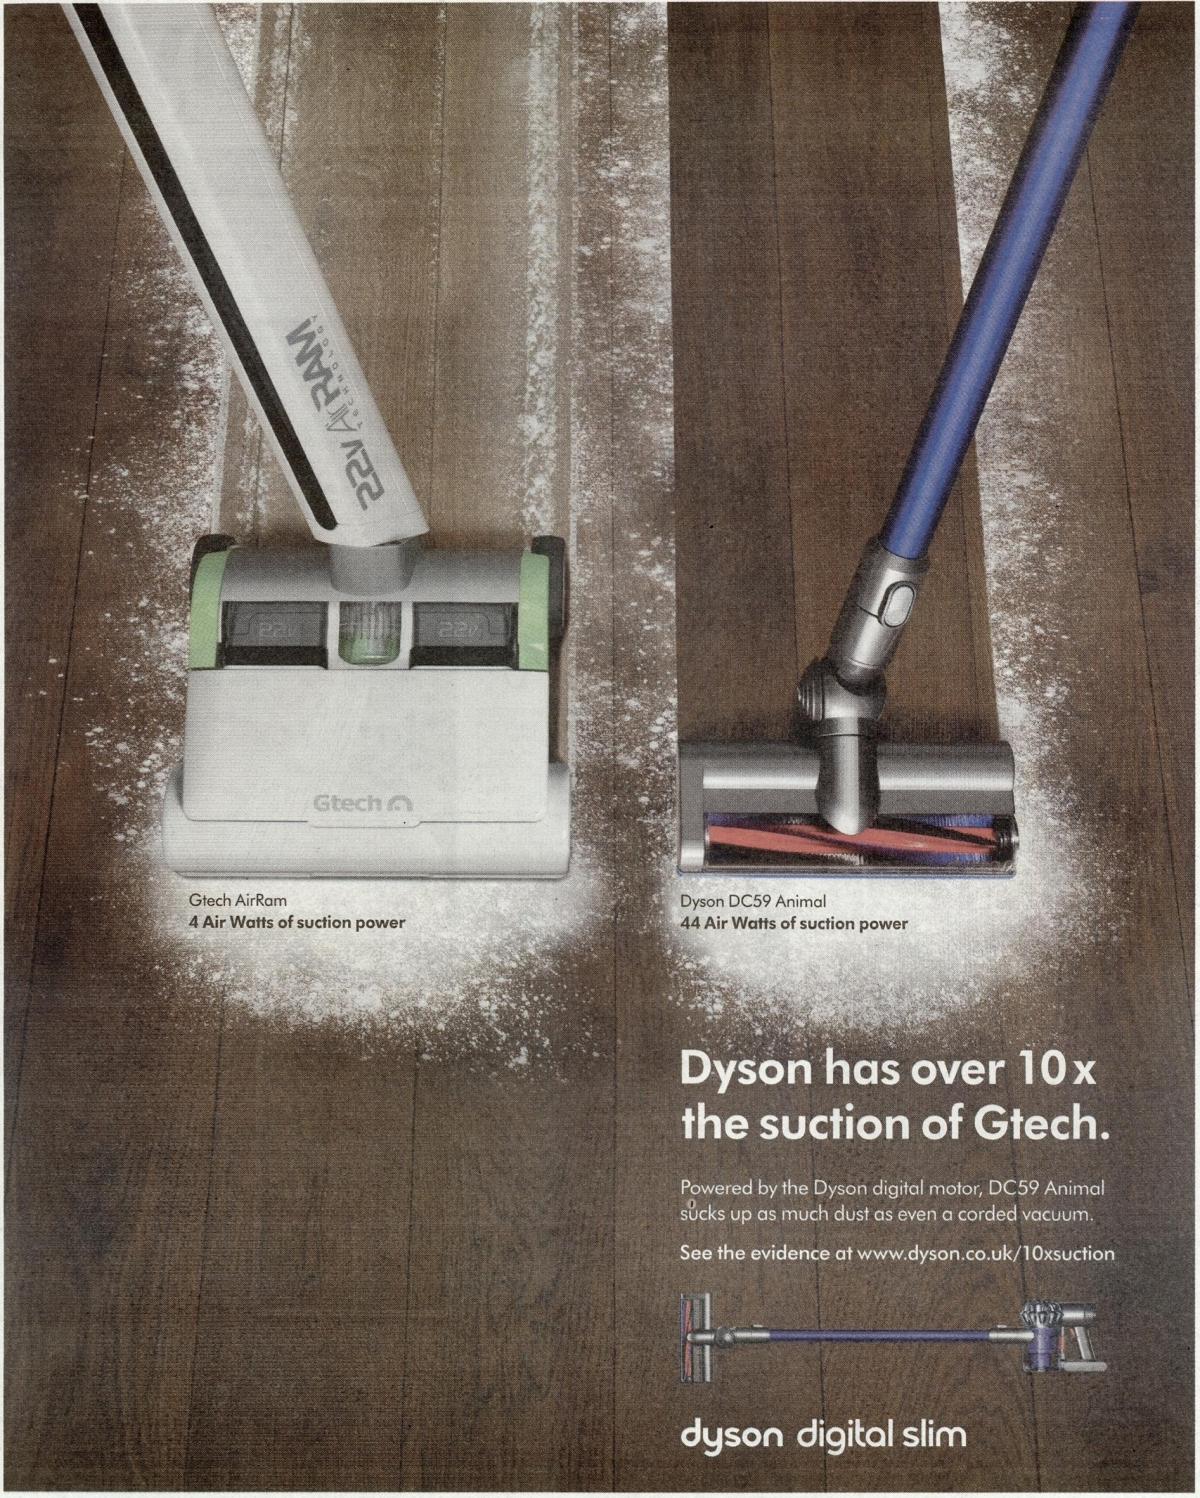 Dyson Advert Banned By Regulator After Aggressive Campaign